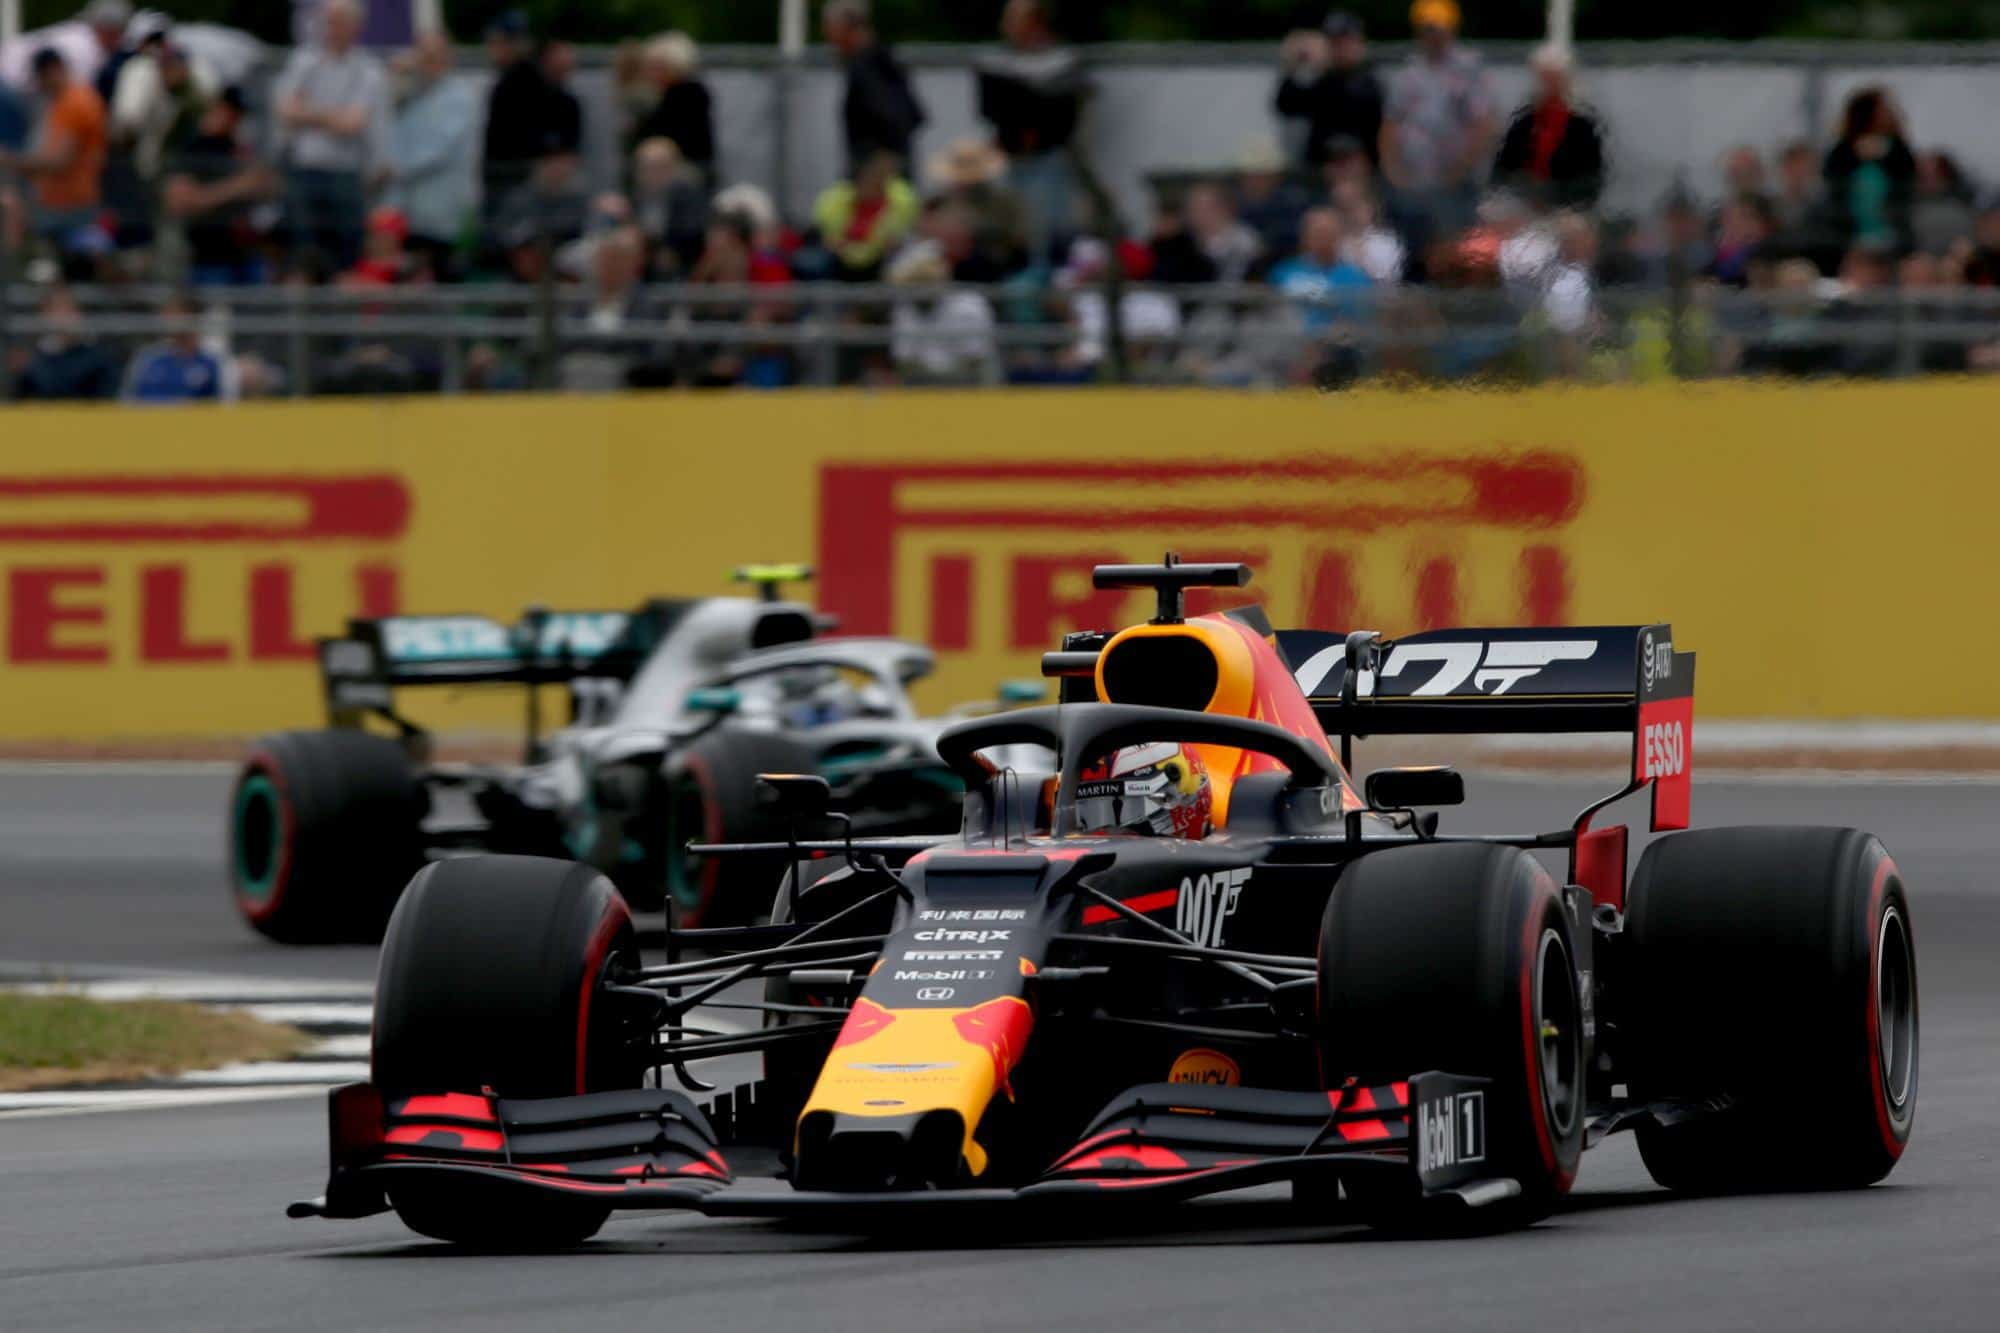 Max Verstappen Red Bull RB15 leads Valtteri Bottas Mercedes F1 W10 FP3 British GP F1 2019 Photo Red Bull